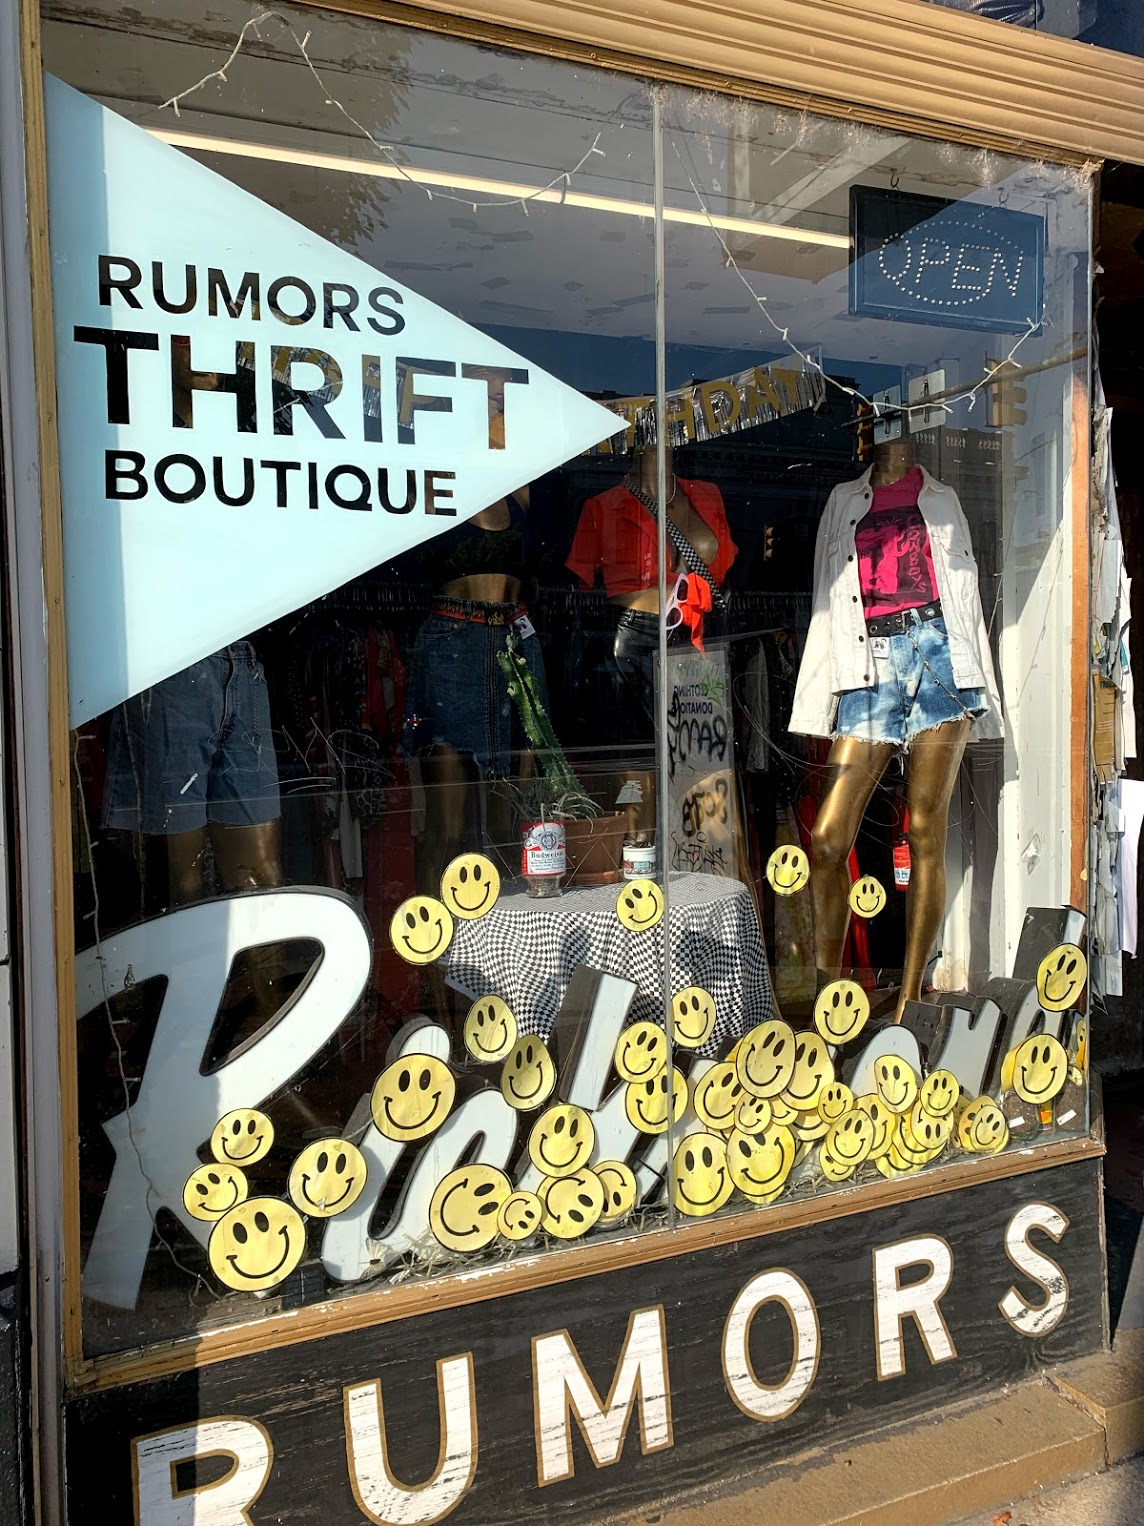 Rumors is a consignment shop located near VCU's campus.